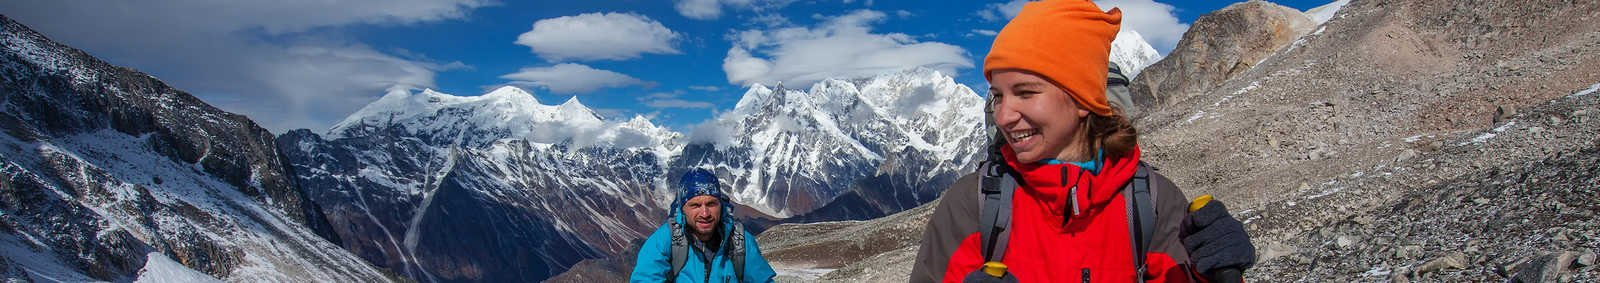 Hikers on the trek in Himalayas, Manaslu region, Nepal